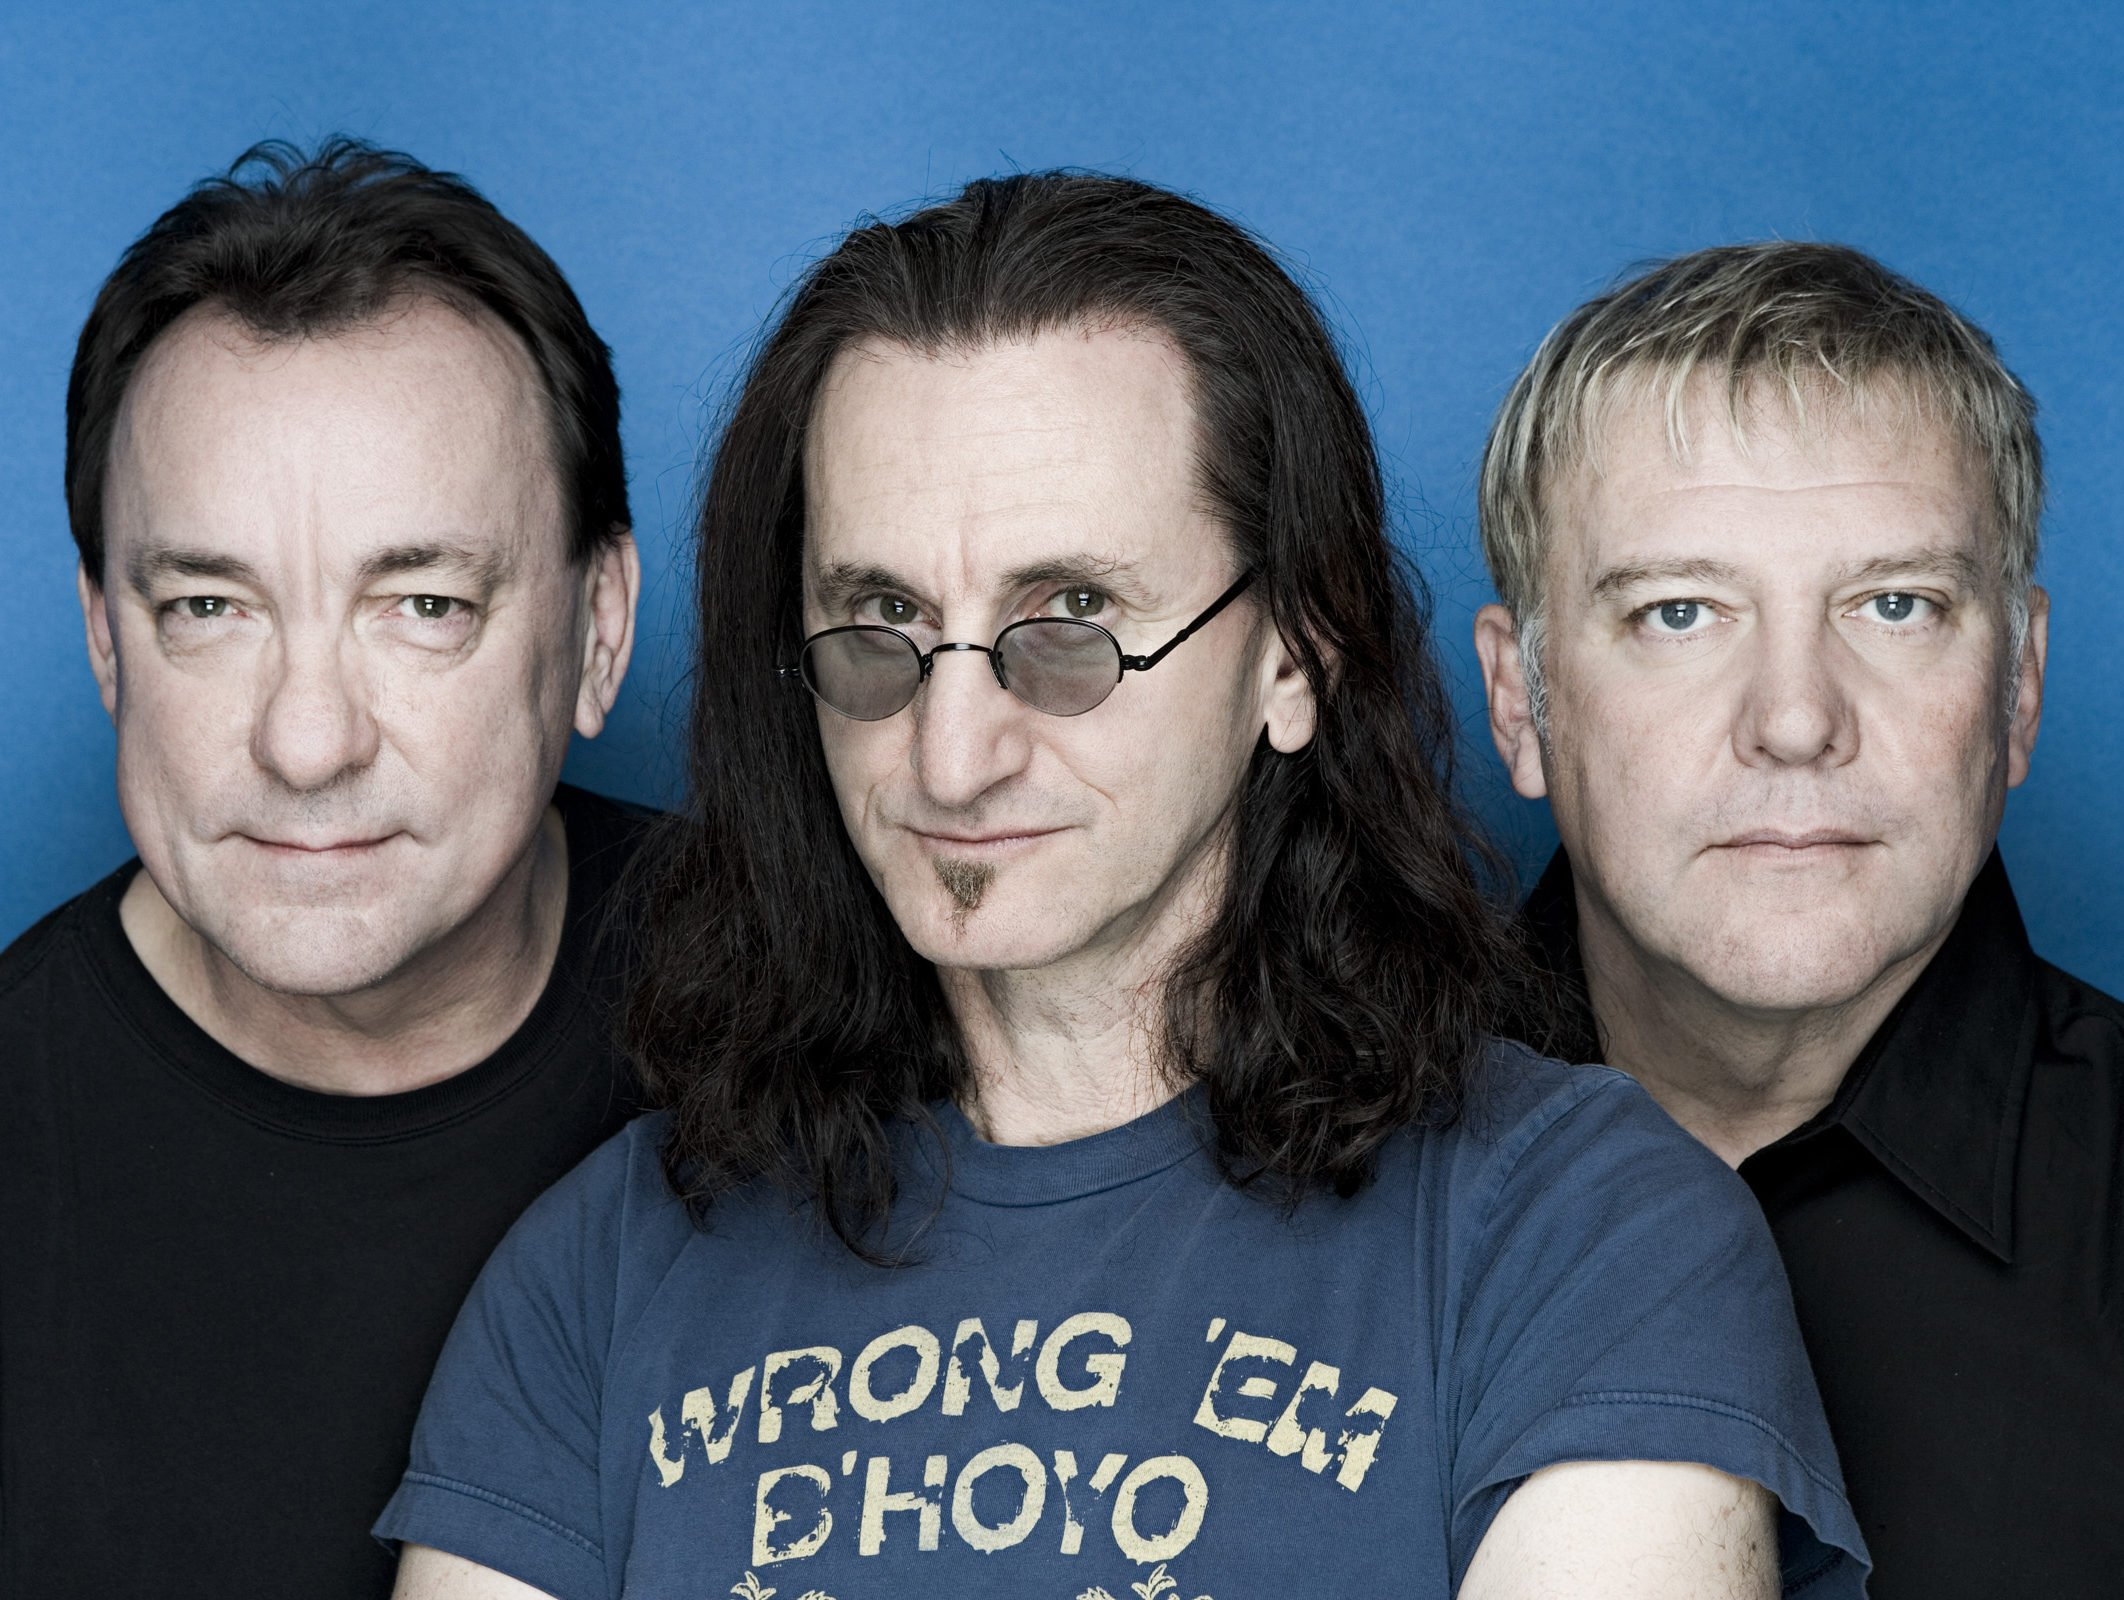 1pop0518 e1610448332610 20 Things You Probably Never Knew About Rush